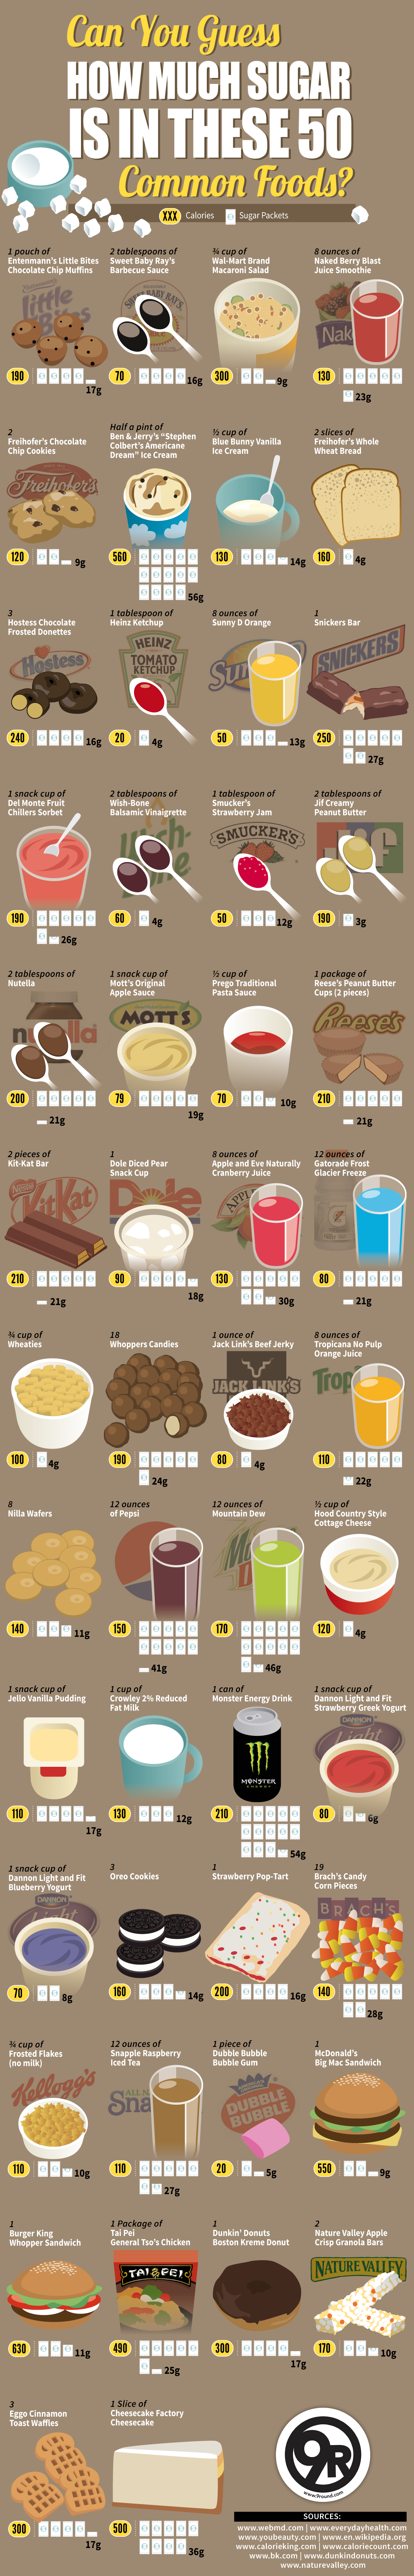 Can You Guess How Much Sugar is in These 50 Common Foods?